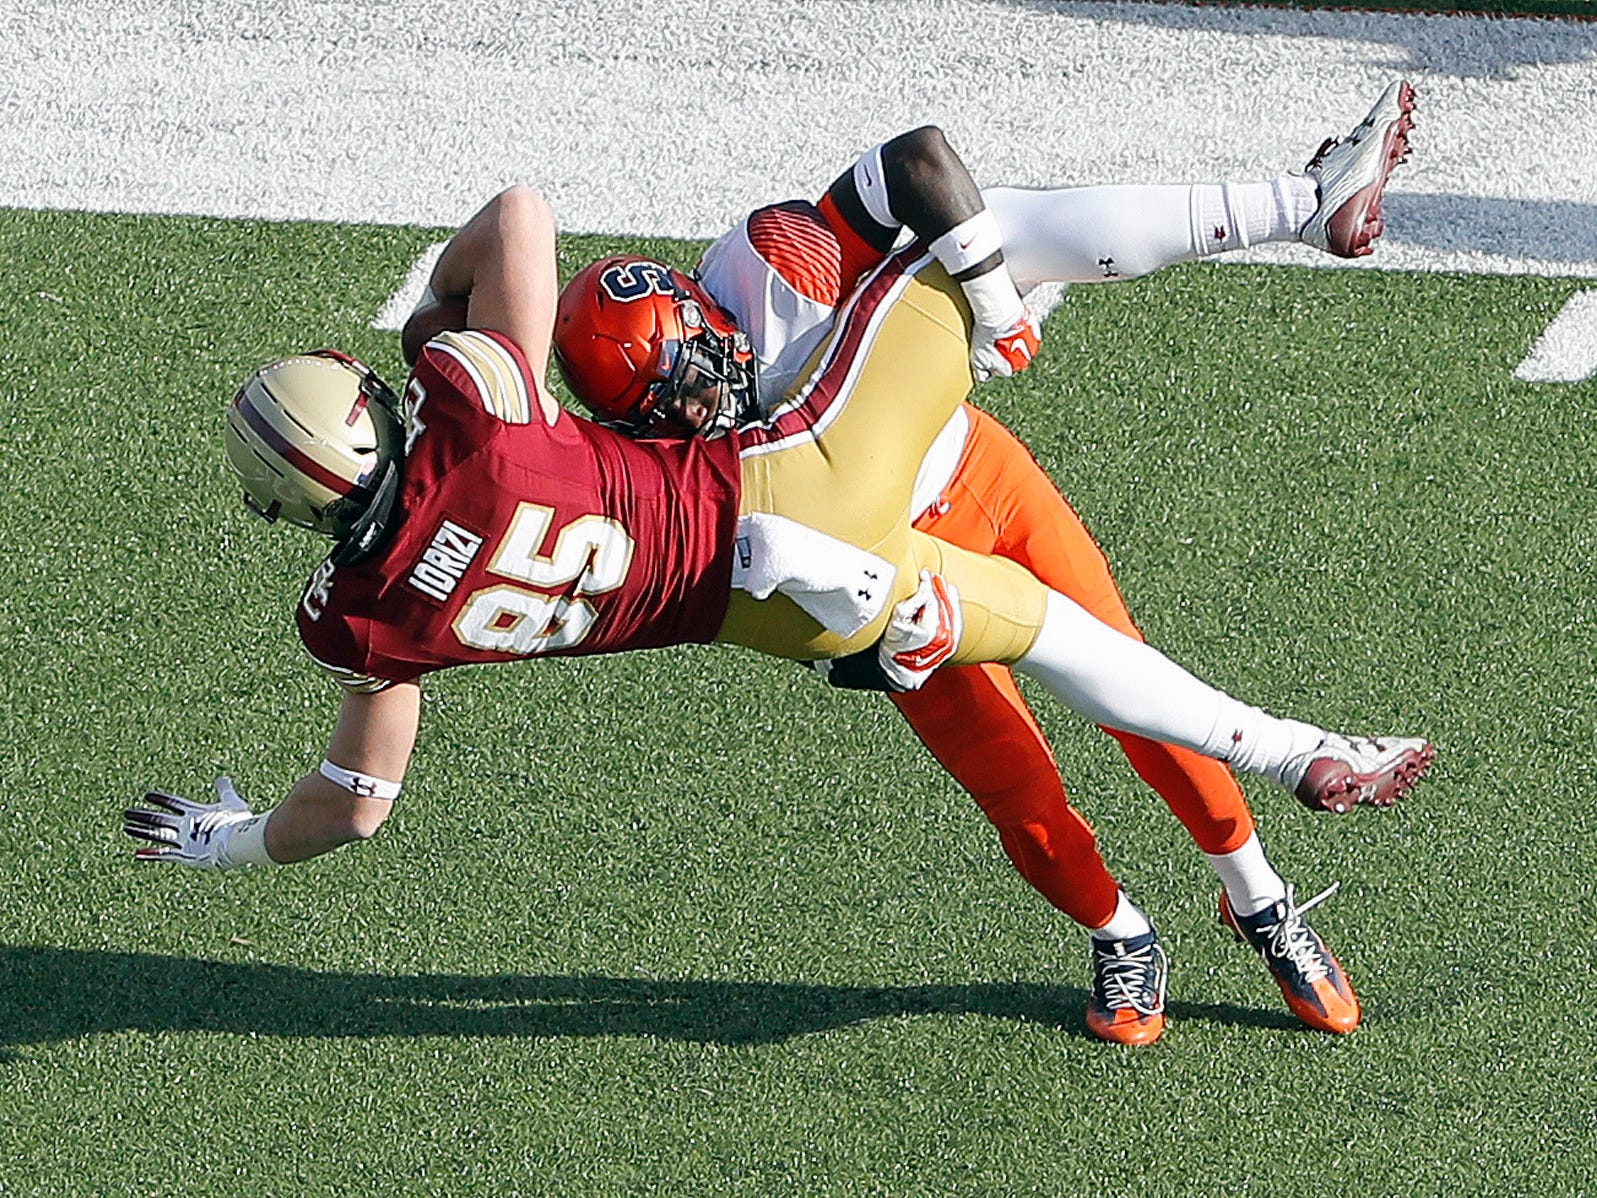 Syracuse defensive back Trill Williams (21) brings down Boston College tight end Korab Idrizi (85) the first half at Alumni Stadium.